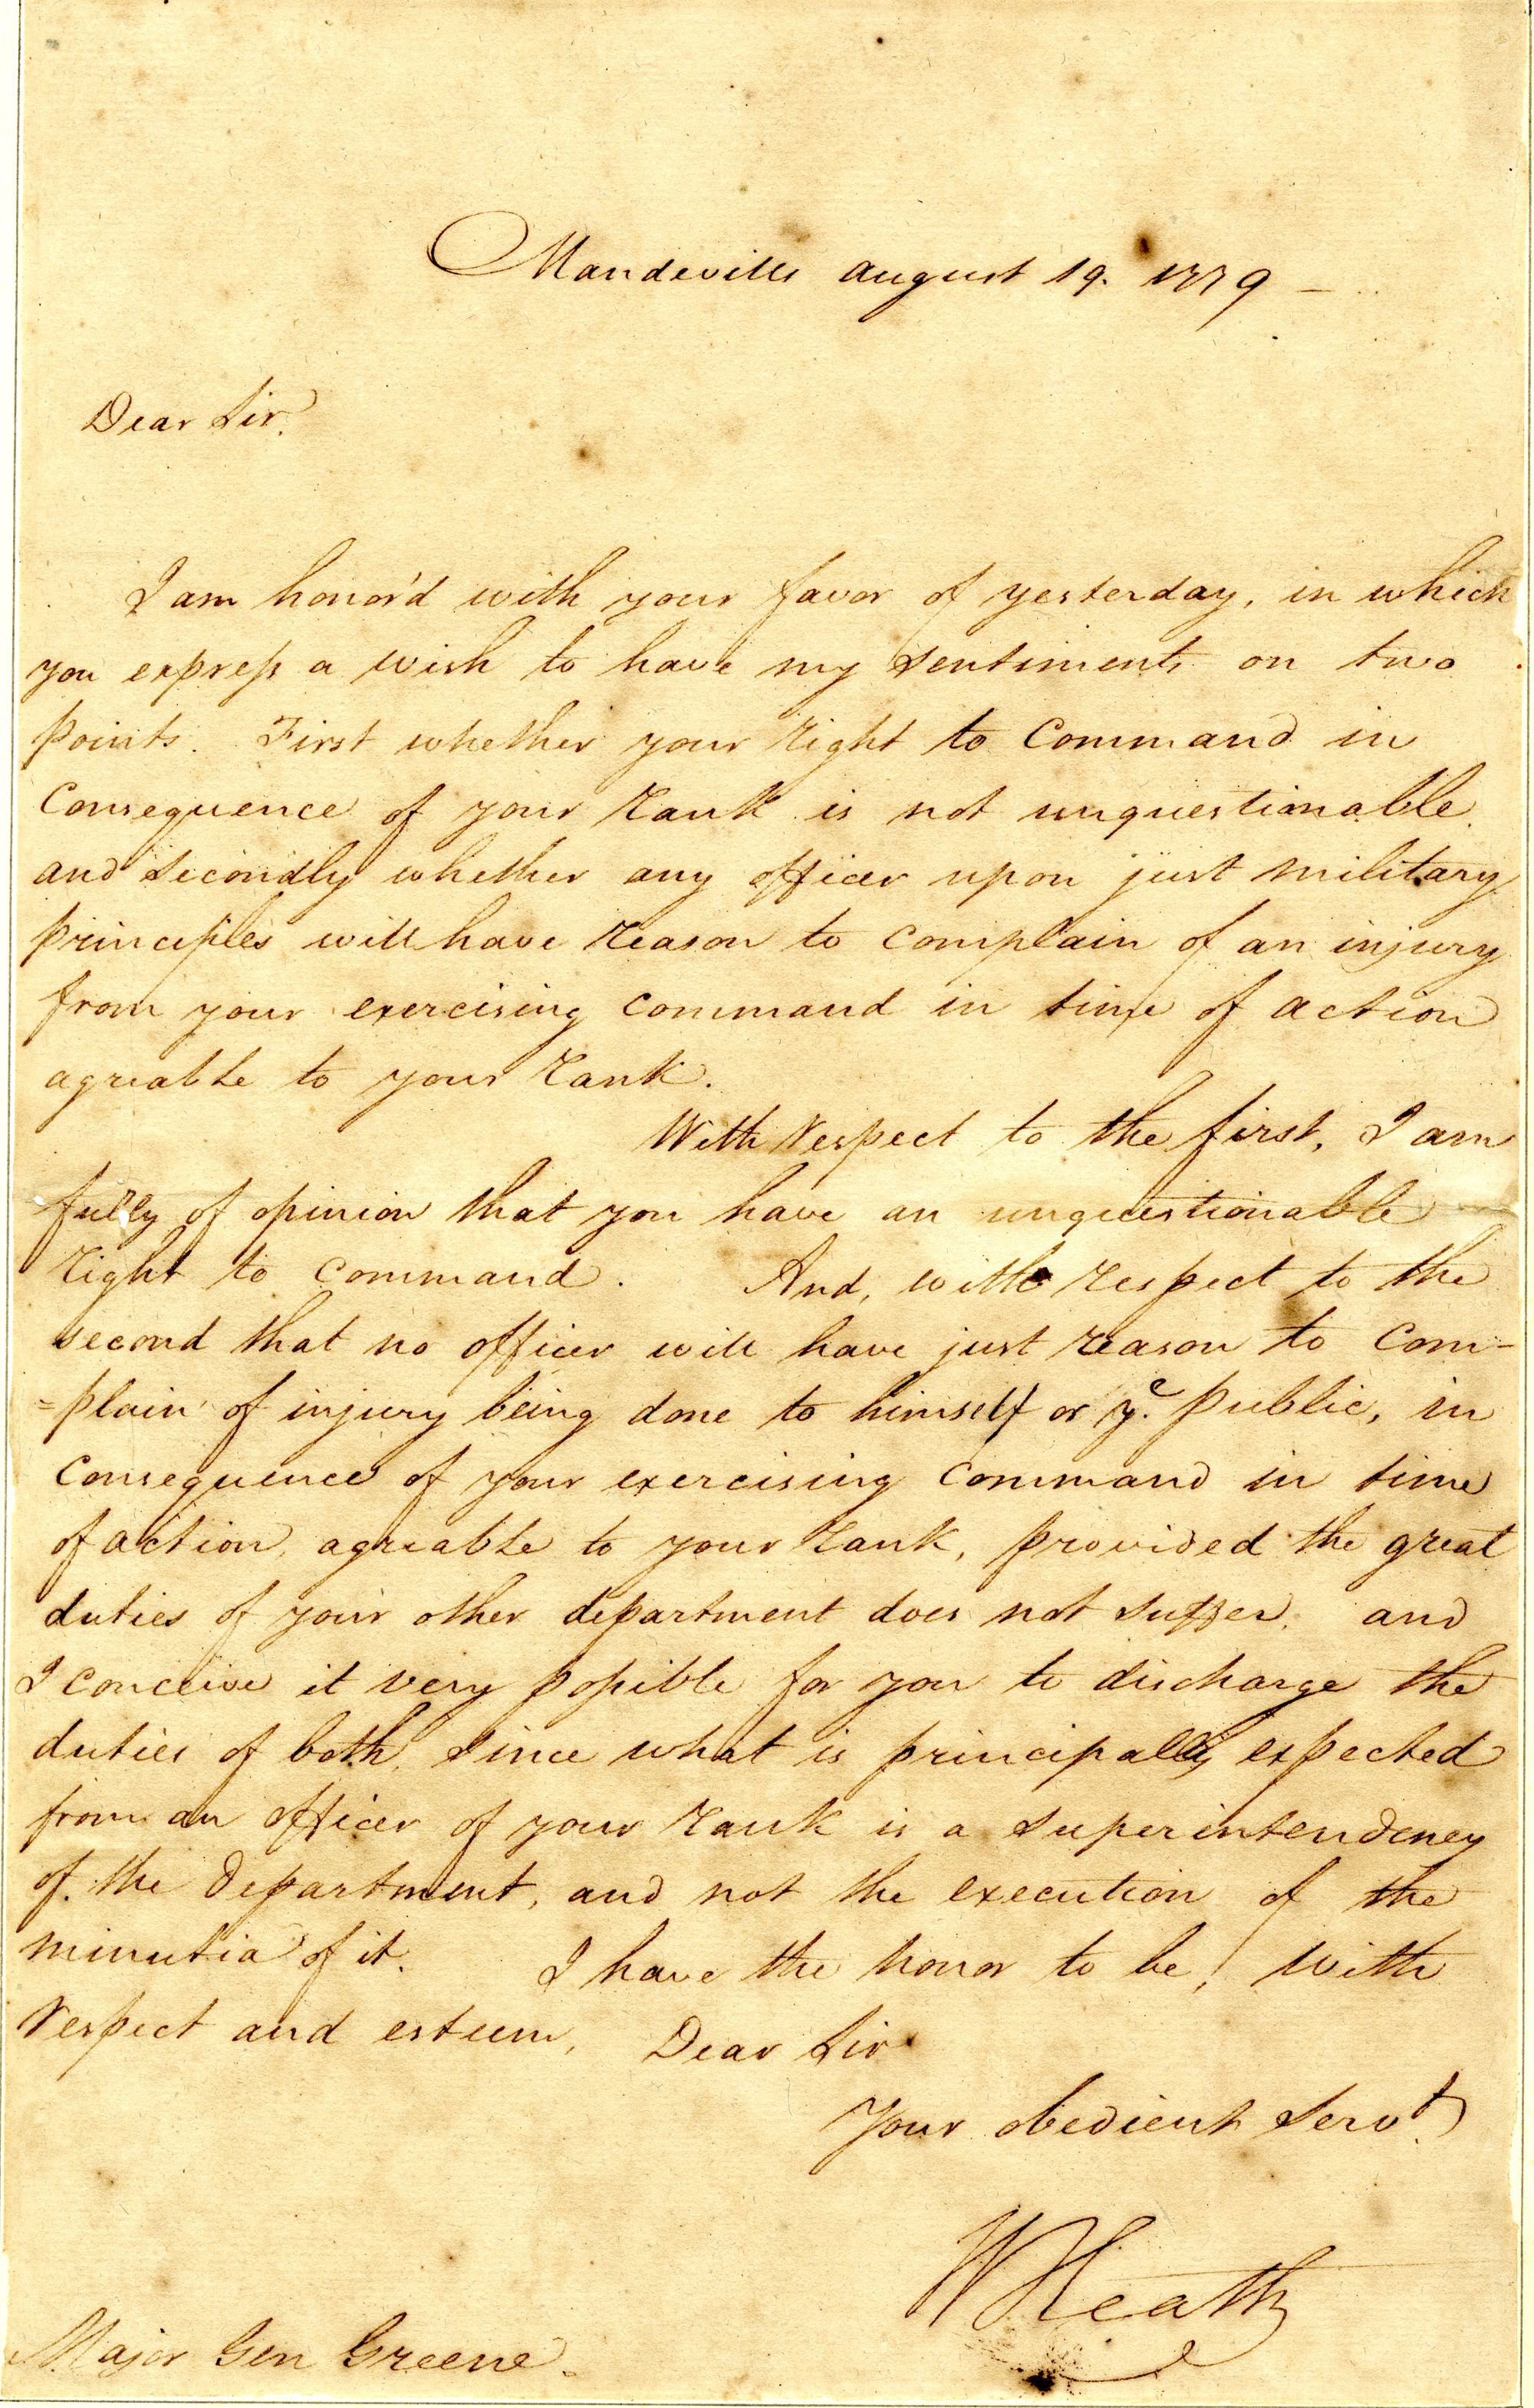 Letter from William Heath to Nathanael Green